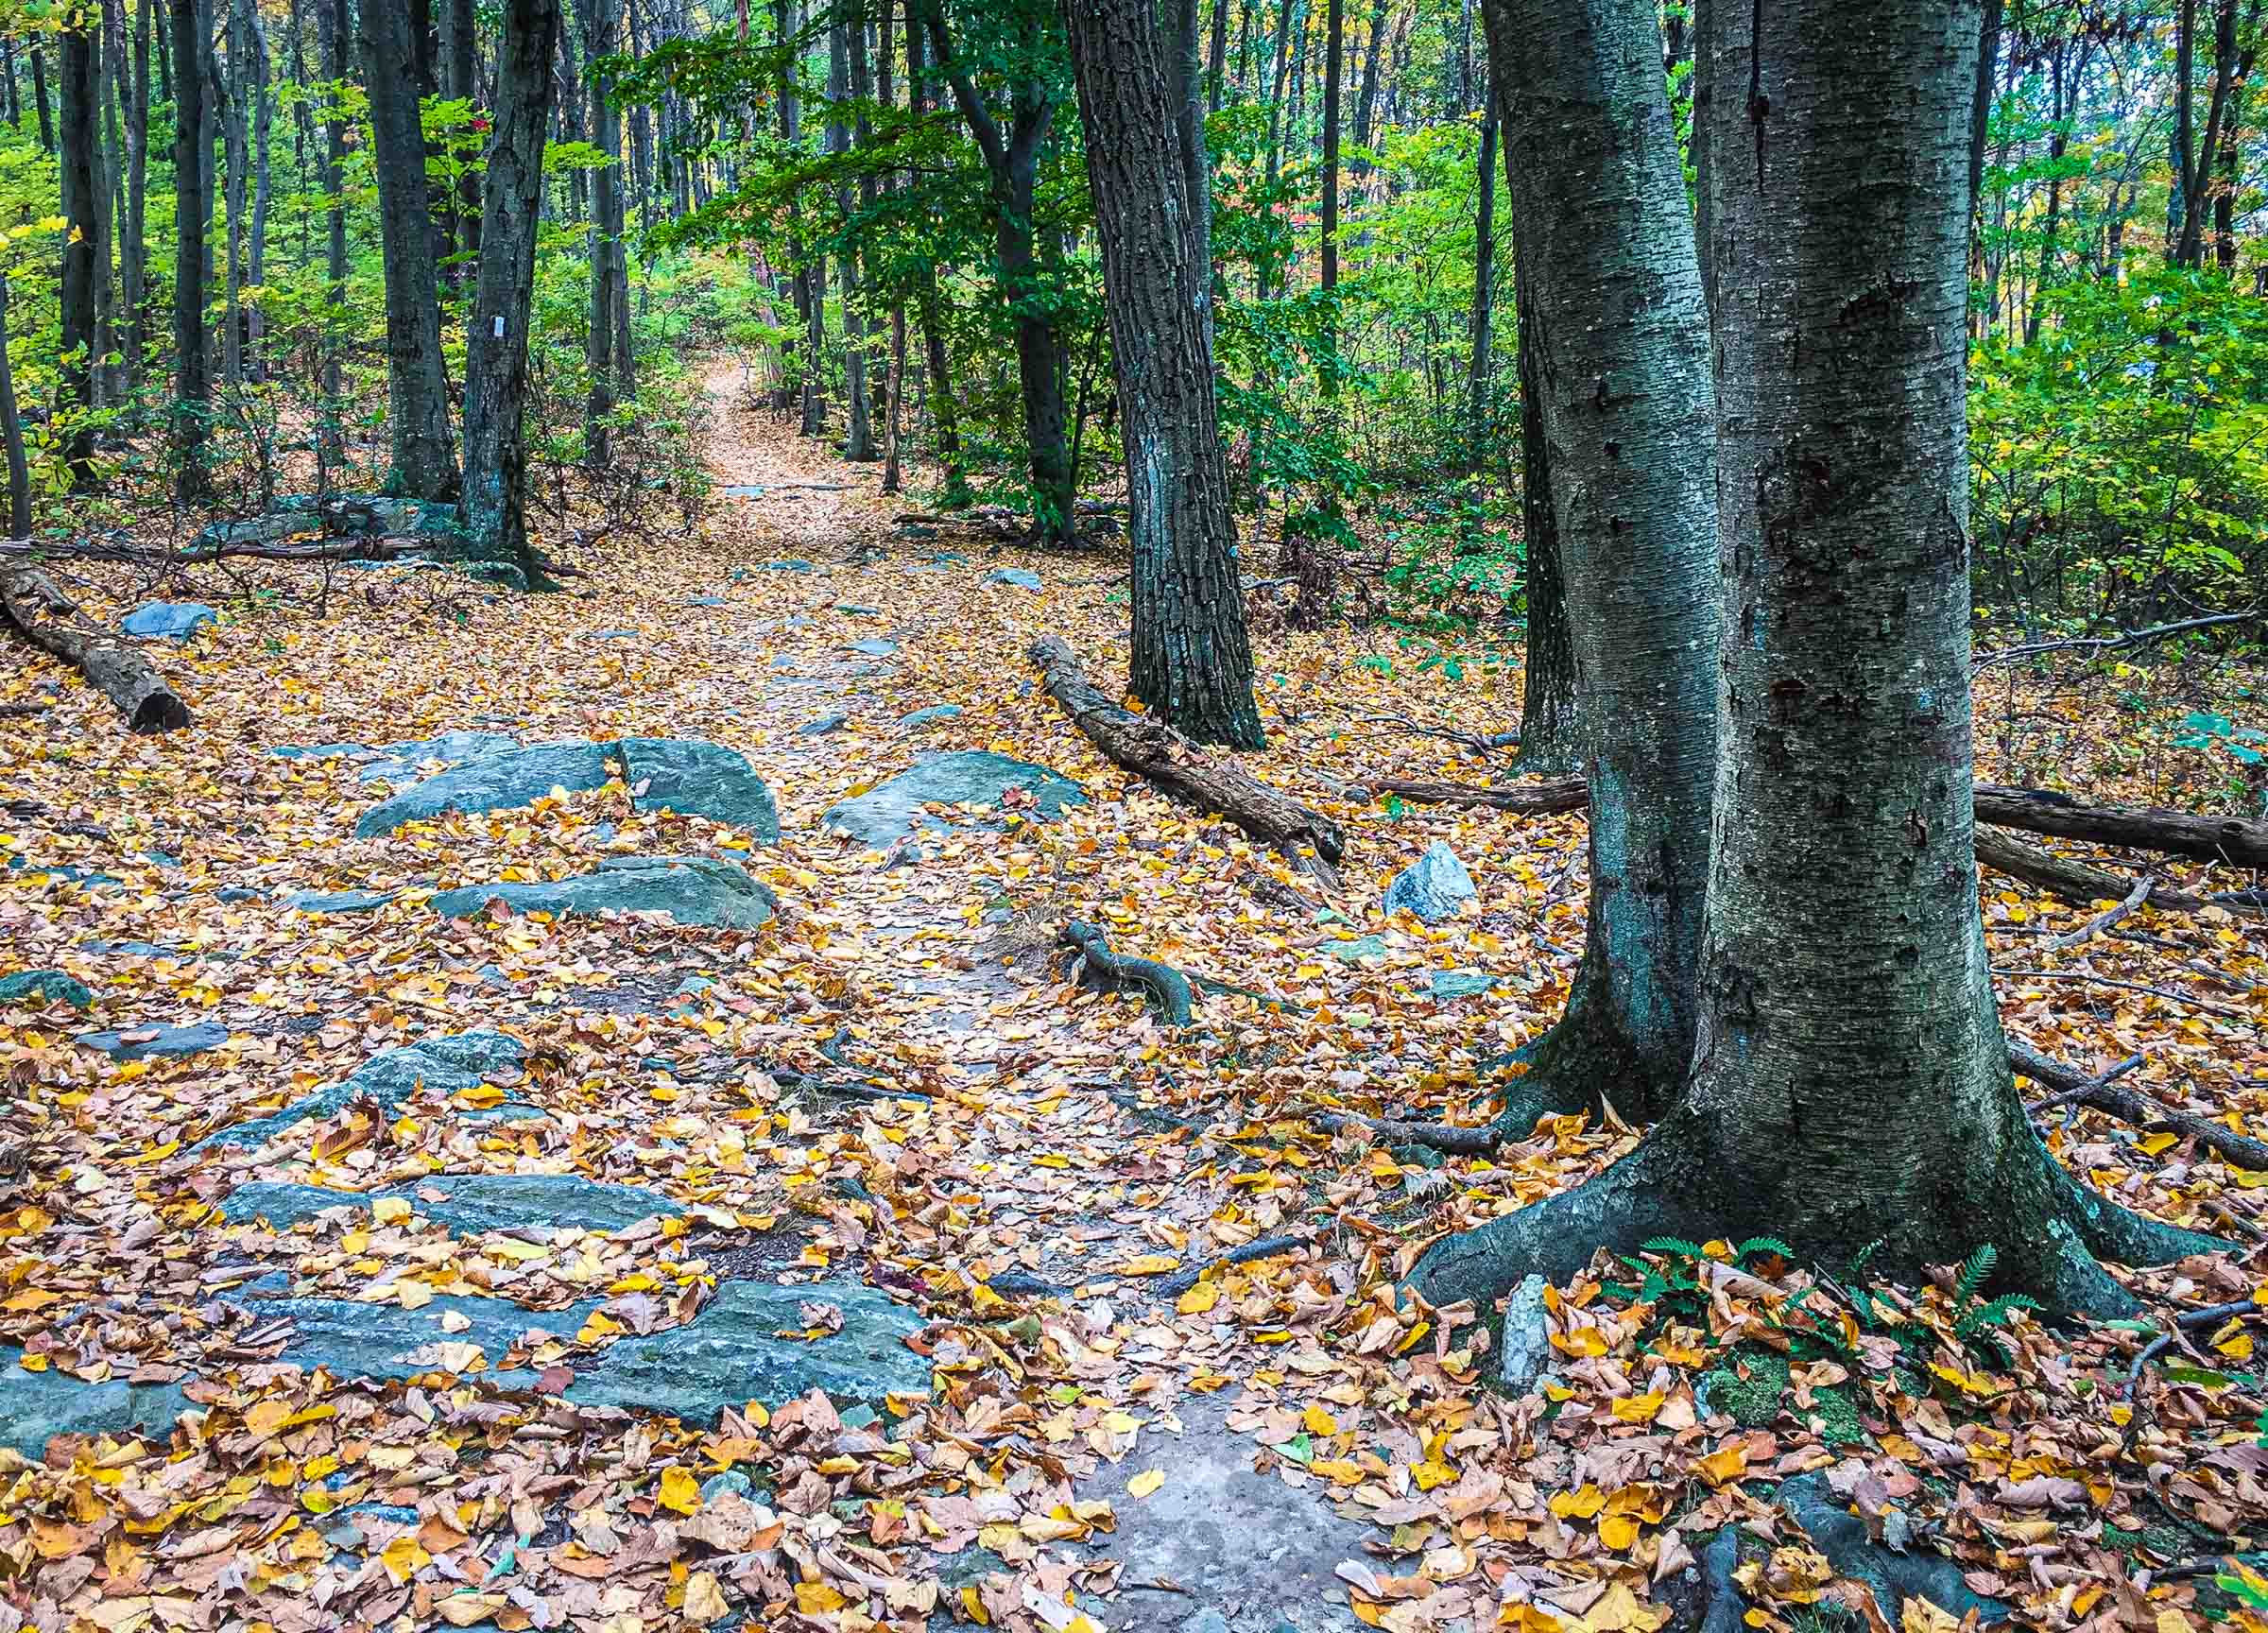 The Appalachian Trail in Maryland